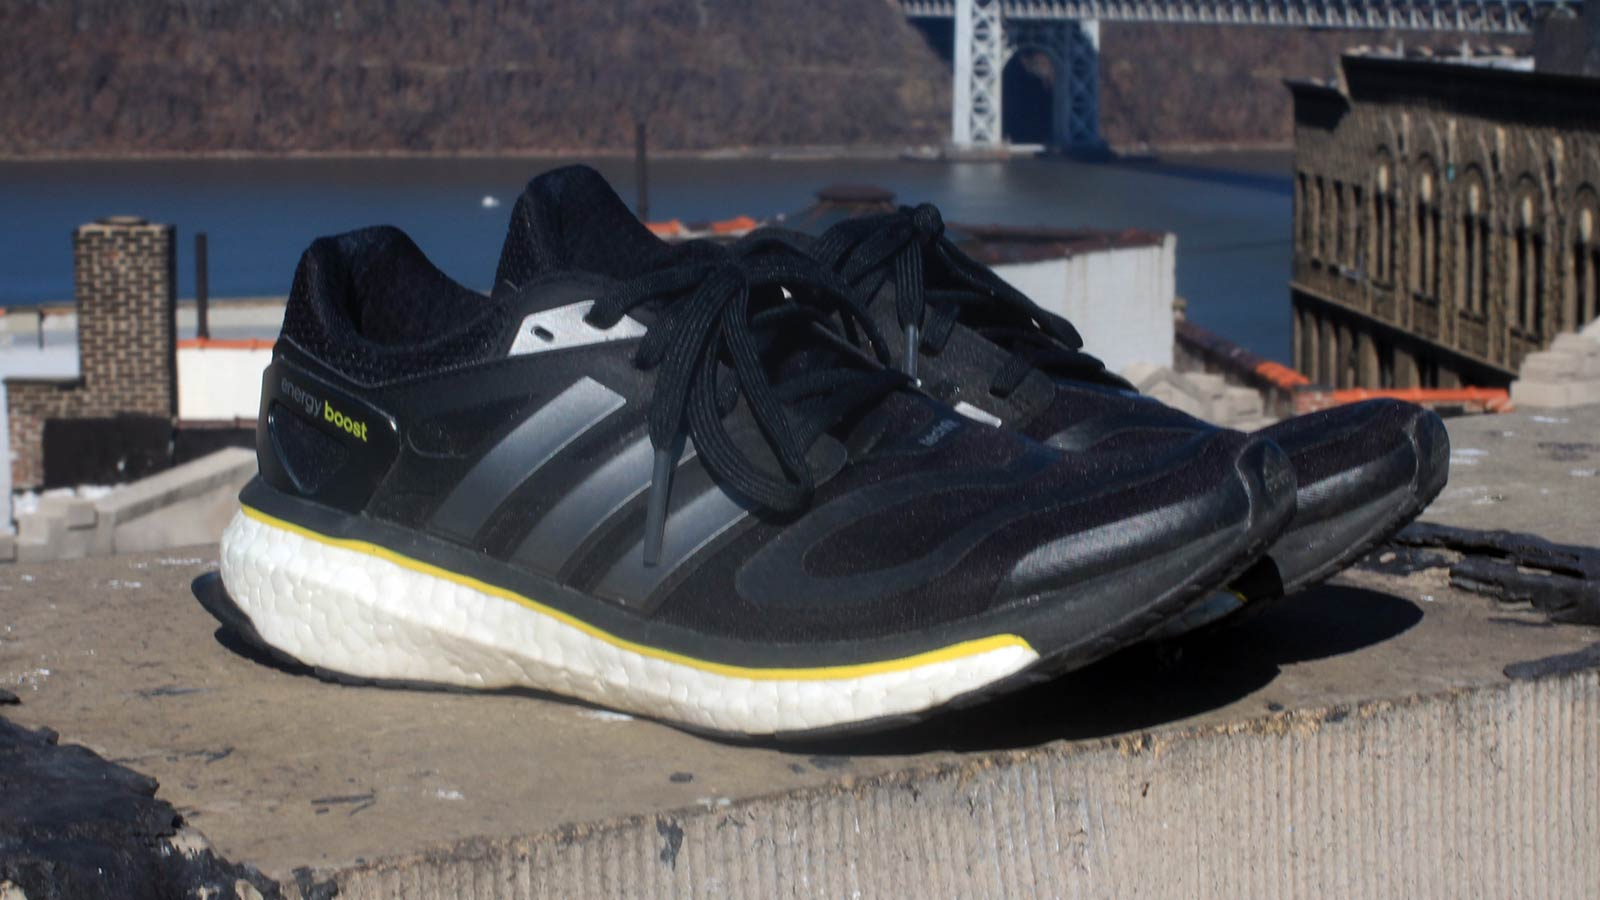 Adidas Energy Boost Price In India